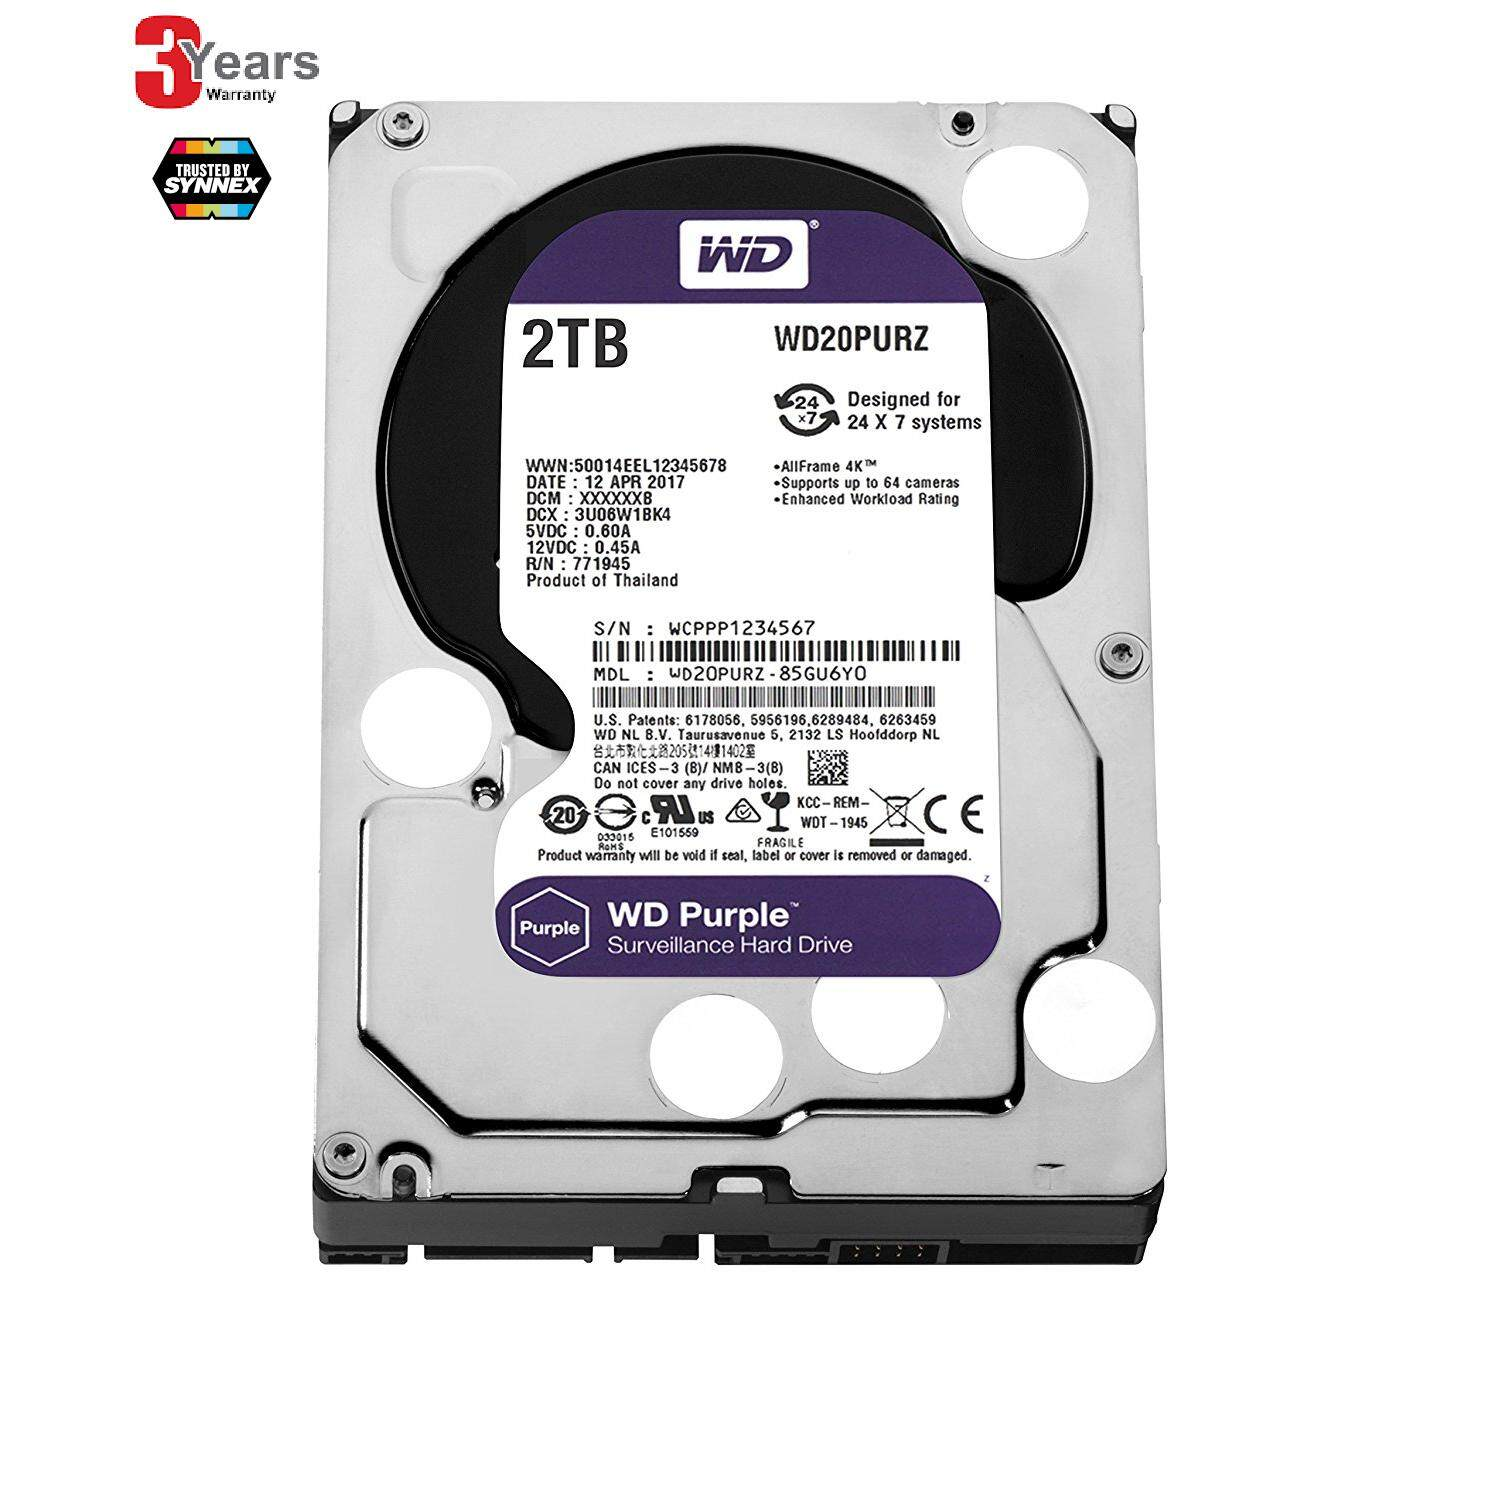 ราคา 2 Tb Hdd ฮาร์ดดิส Wd Sata 3 Purple Wd20Purz 3 Years By Synnex Wd